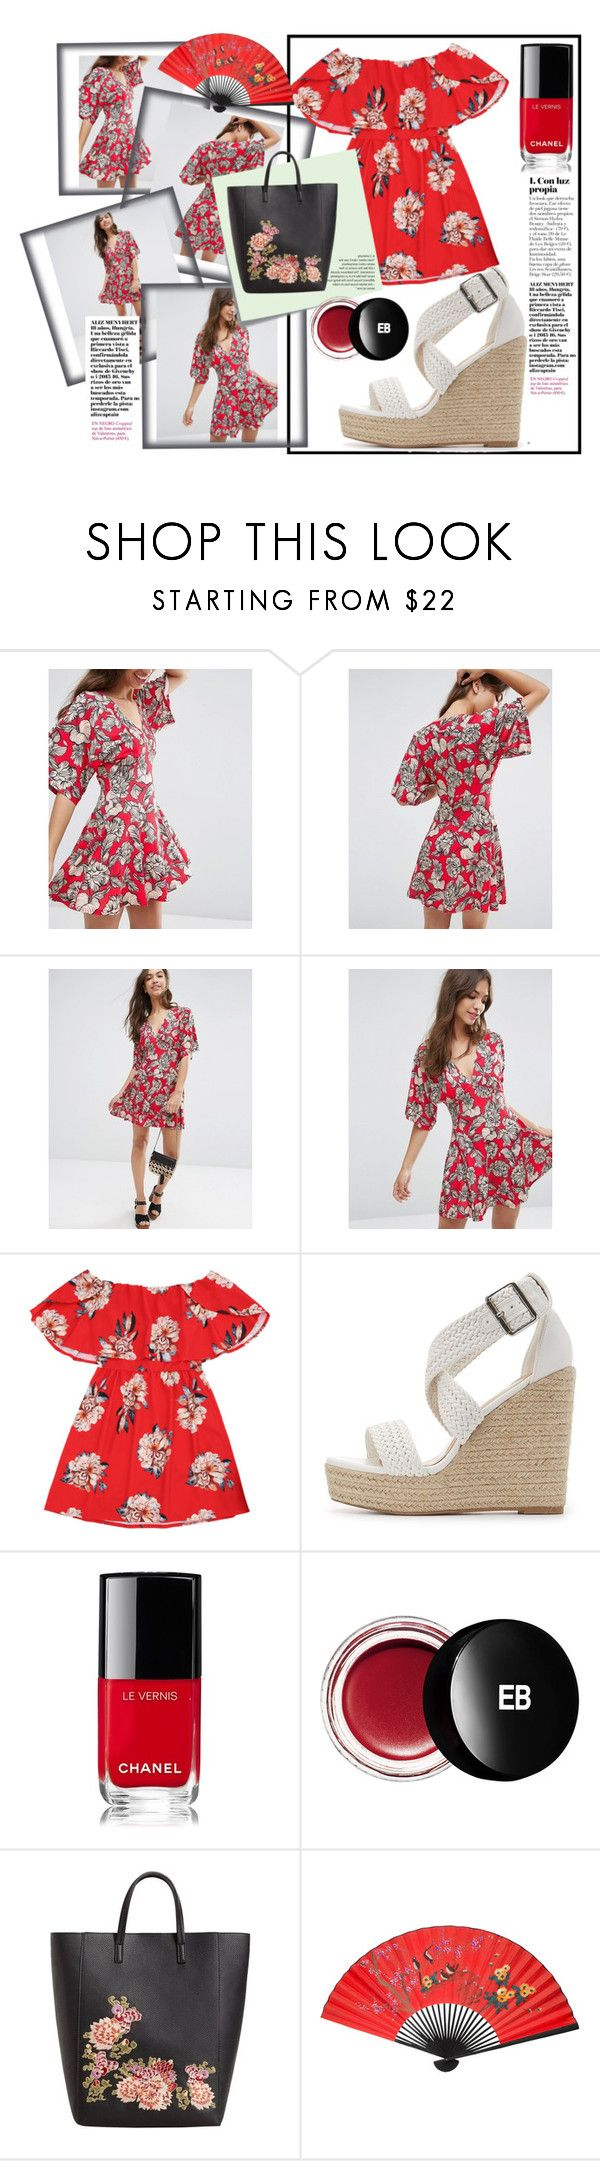 """Inspired by japanese kimono dress"" by victoria-dimeska ❤ liked on Polyvore featuring ASOS, Charlotte Russe, Chanel, Post-It, Edward Bess and MANGO"